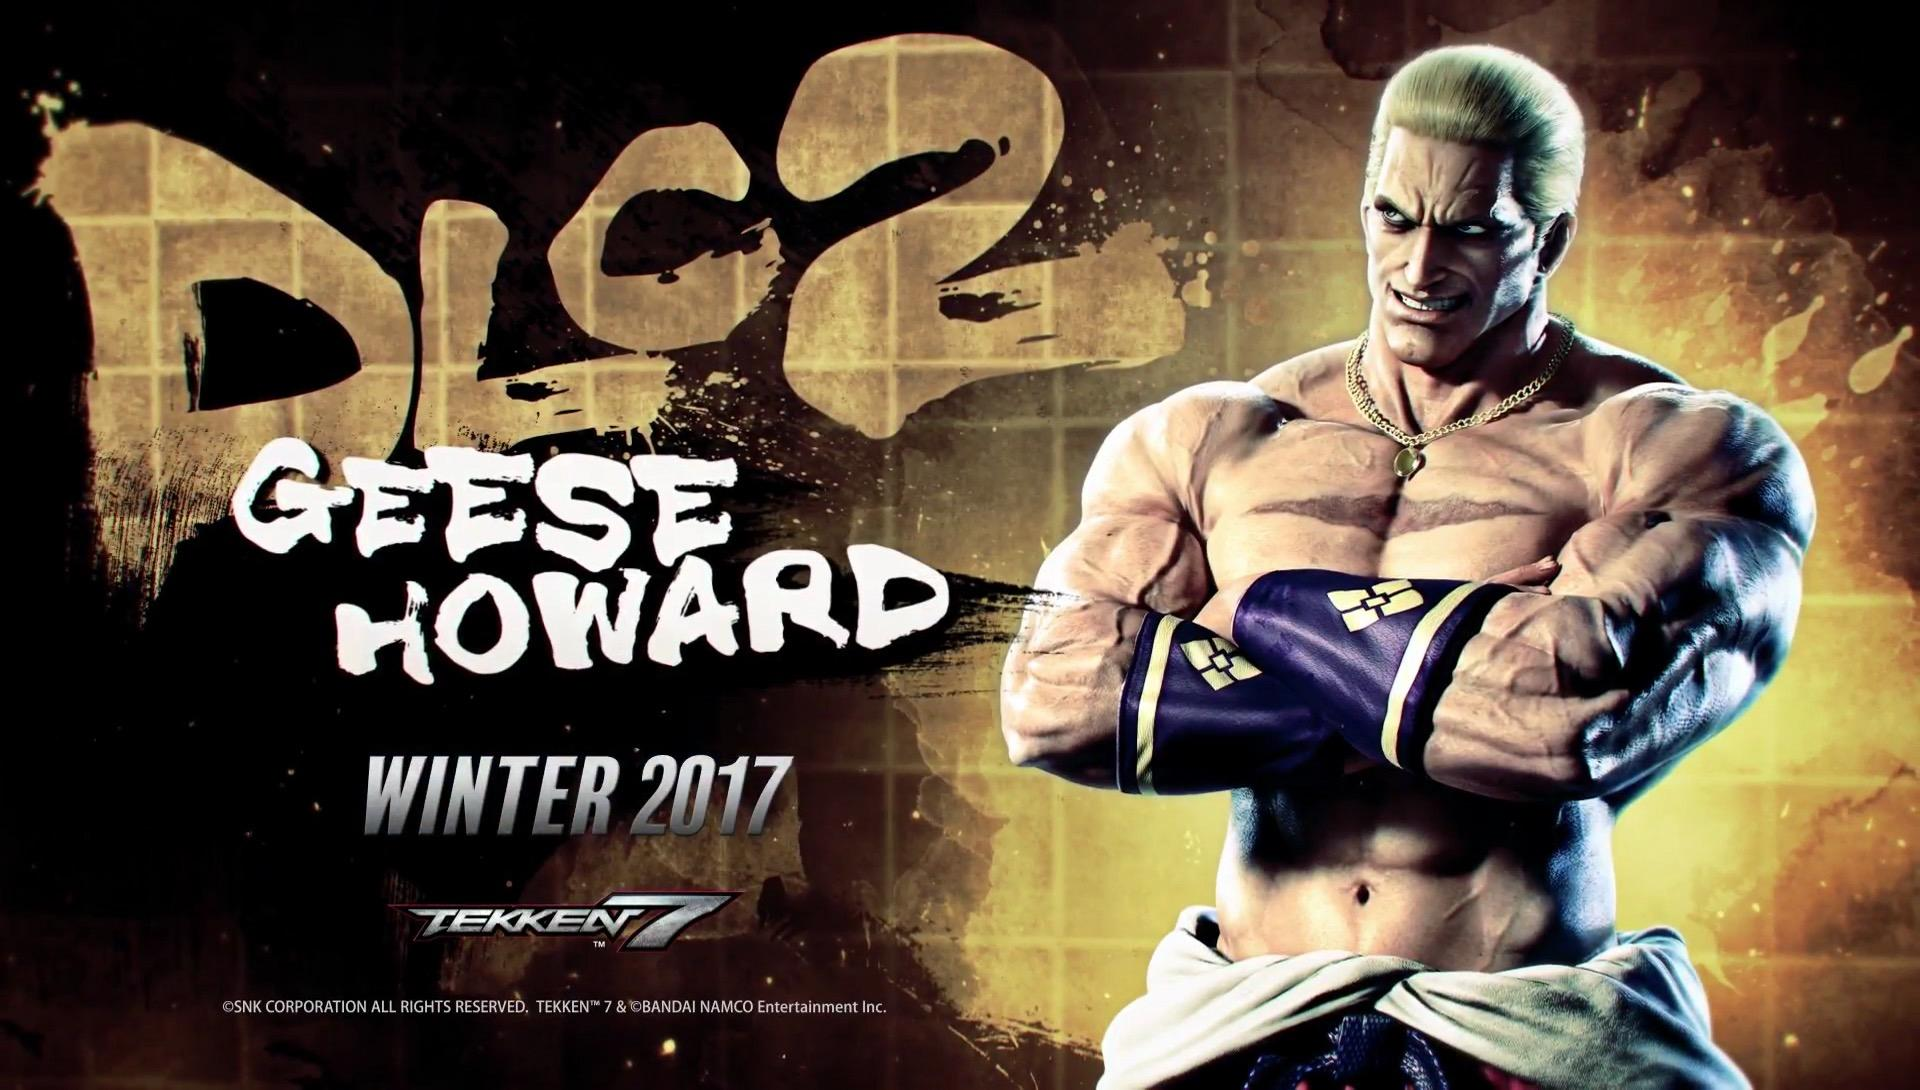 EVO 2017: Fatal Fury's Geese Howard invades Tekken 7 as DLC character